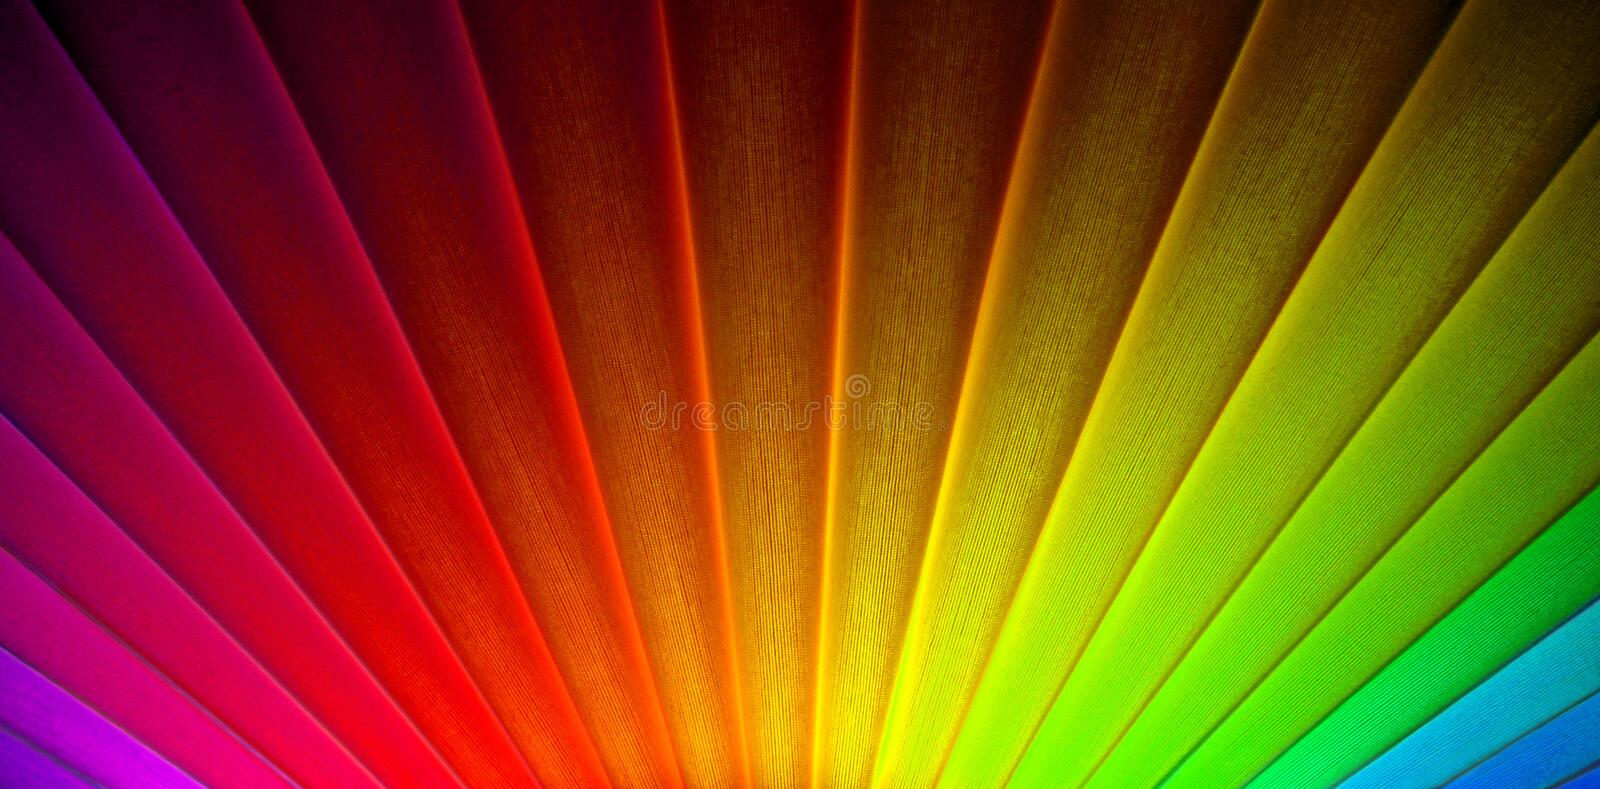 Geometric art deco rainbow sunrise sunburst rays. Photo of geometric lines in an art deco sunburst sunrise design with bright rainbow colours ideal for